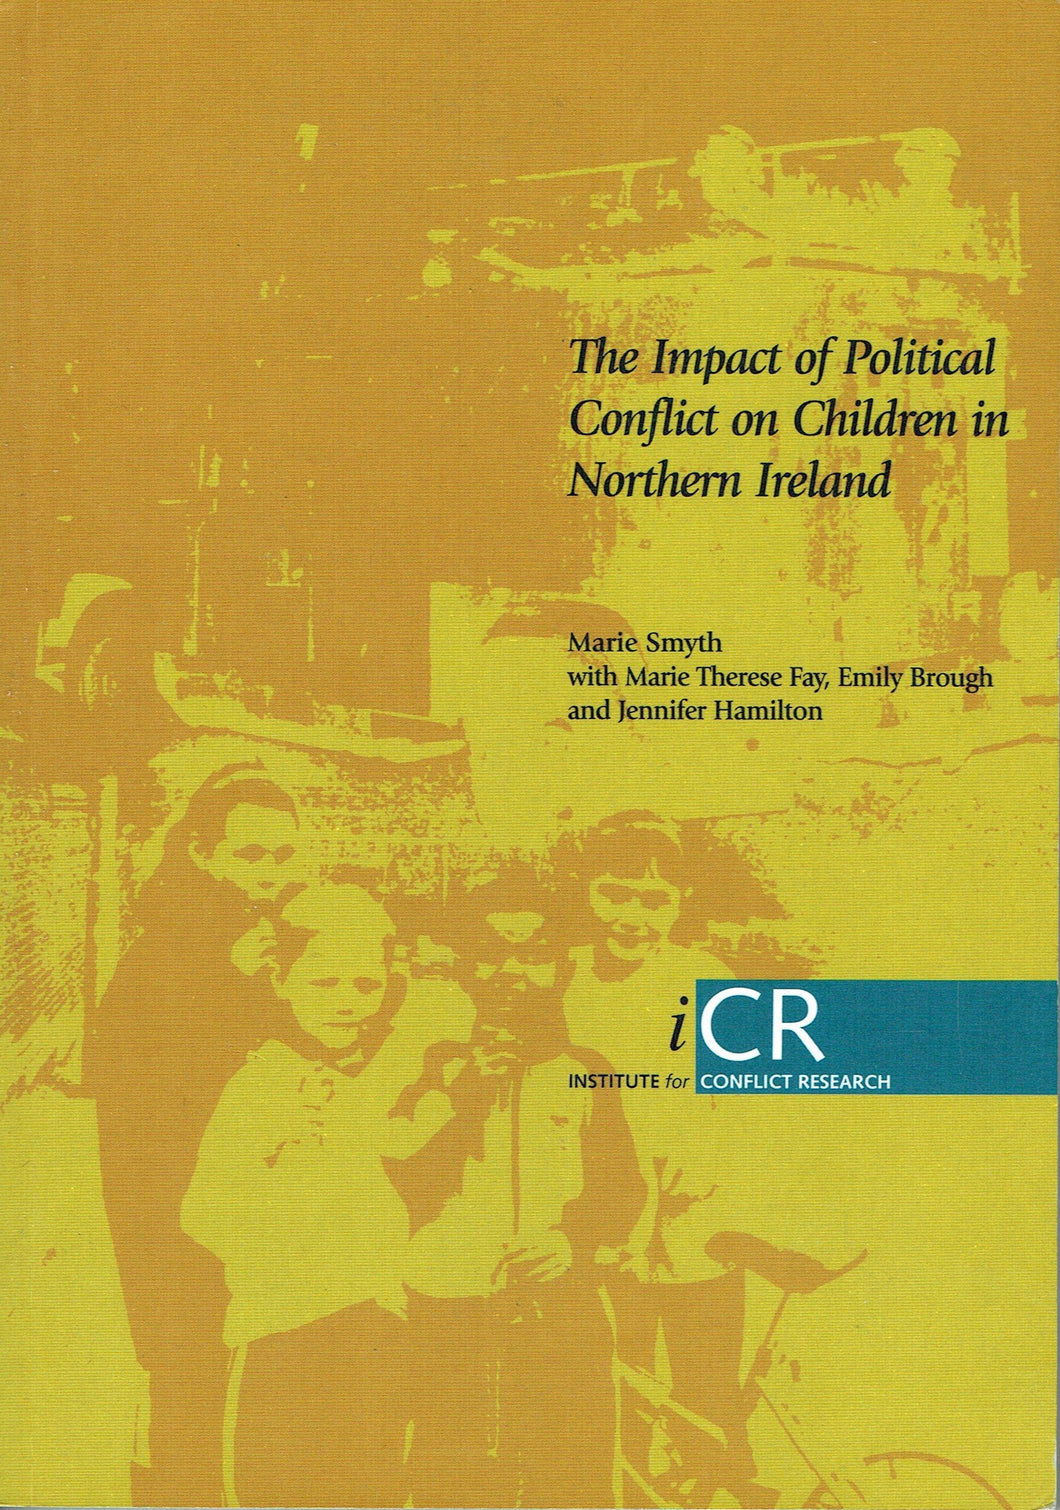 The Impact of Political Conflict on Children in Northern Ireland